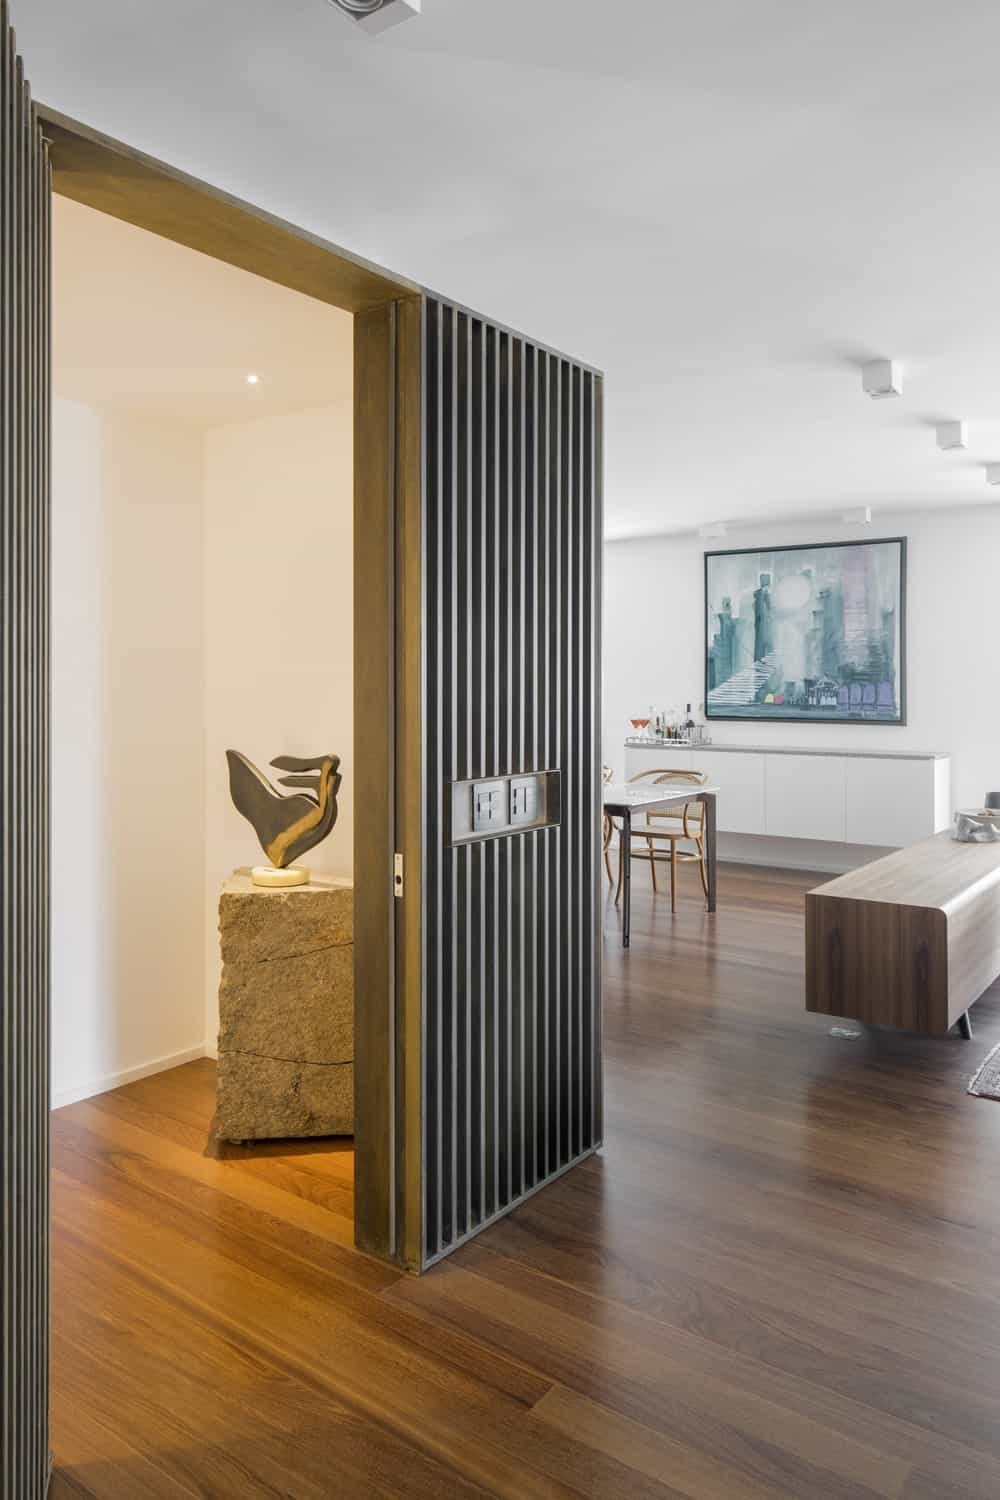 The slatted wall of the living room opens up to a hallway with warm lighting and a decoration sculpture.